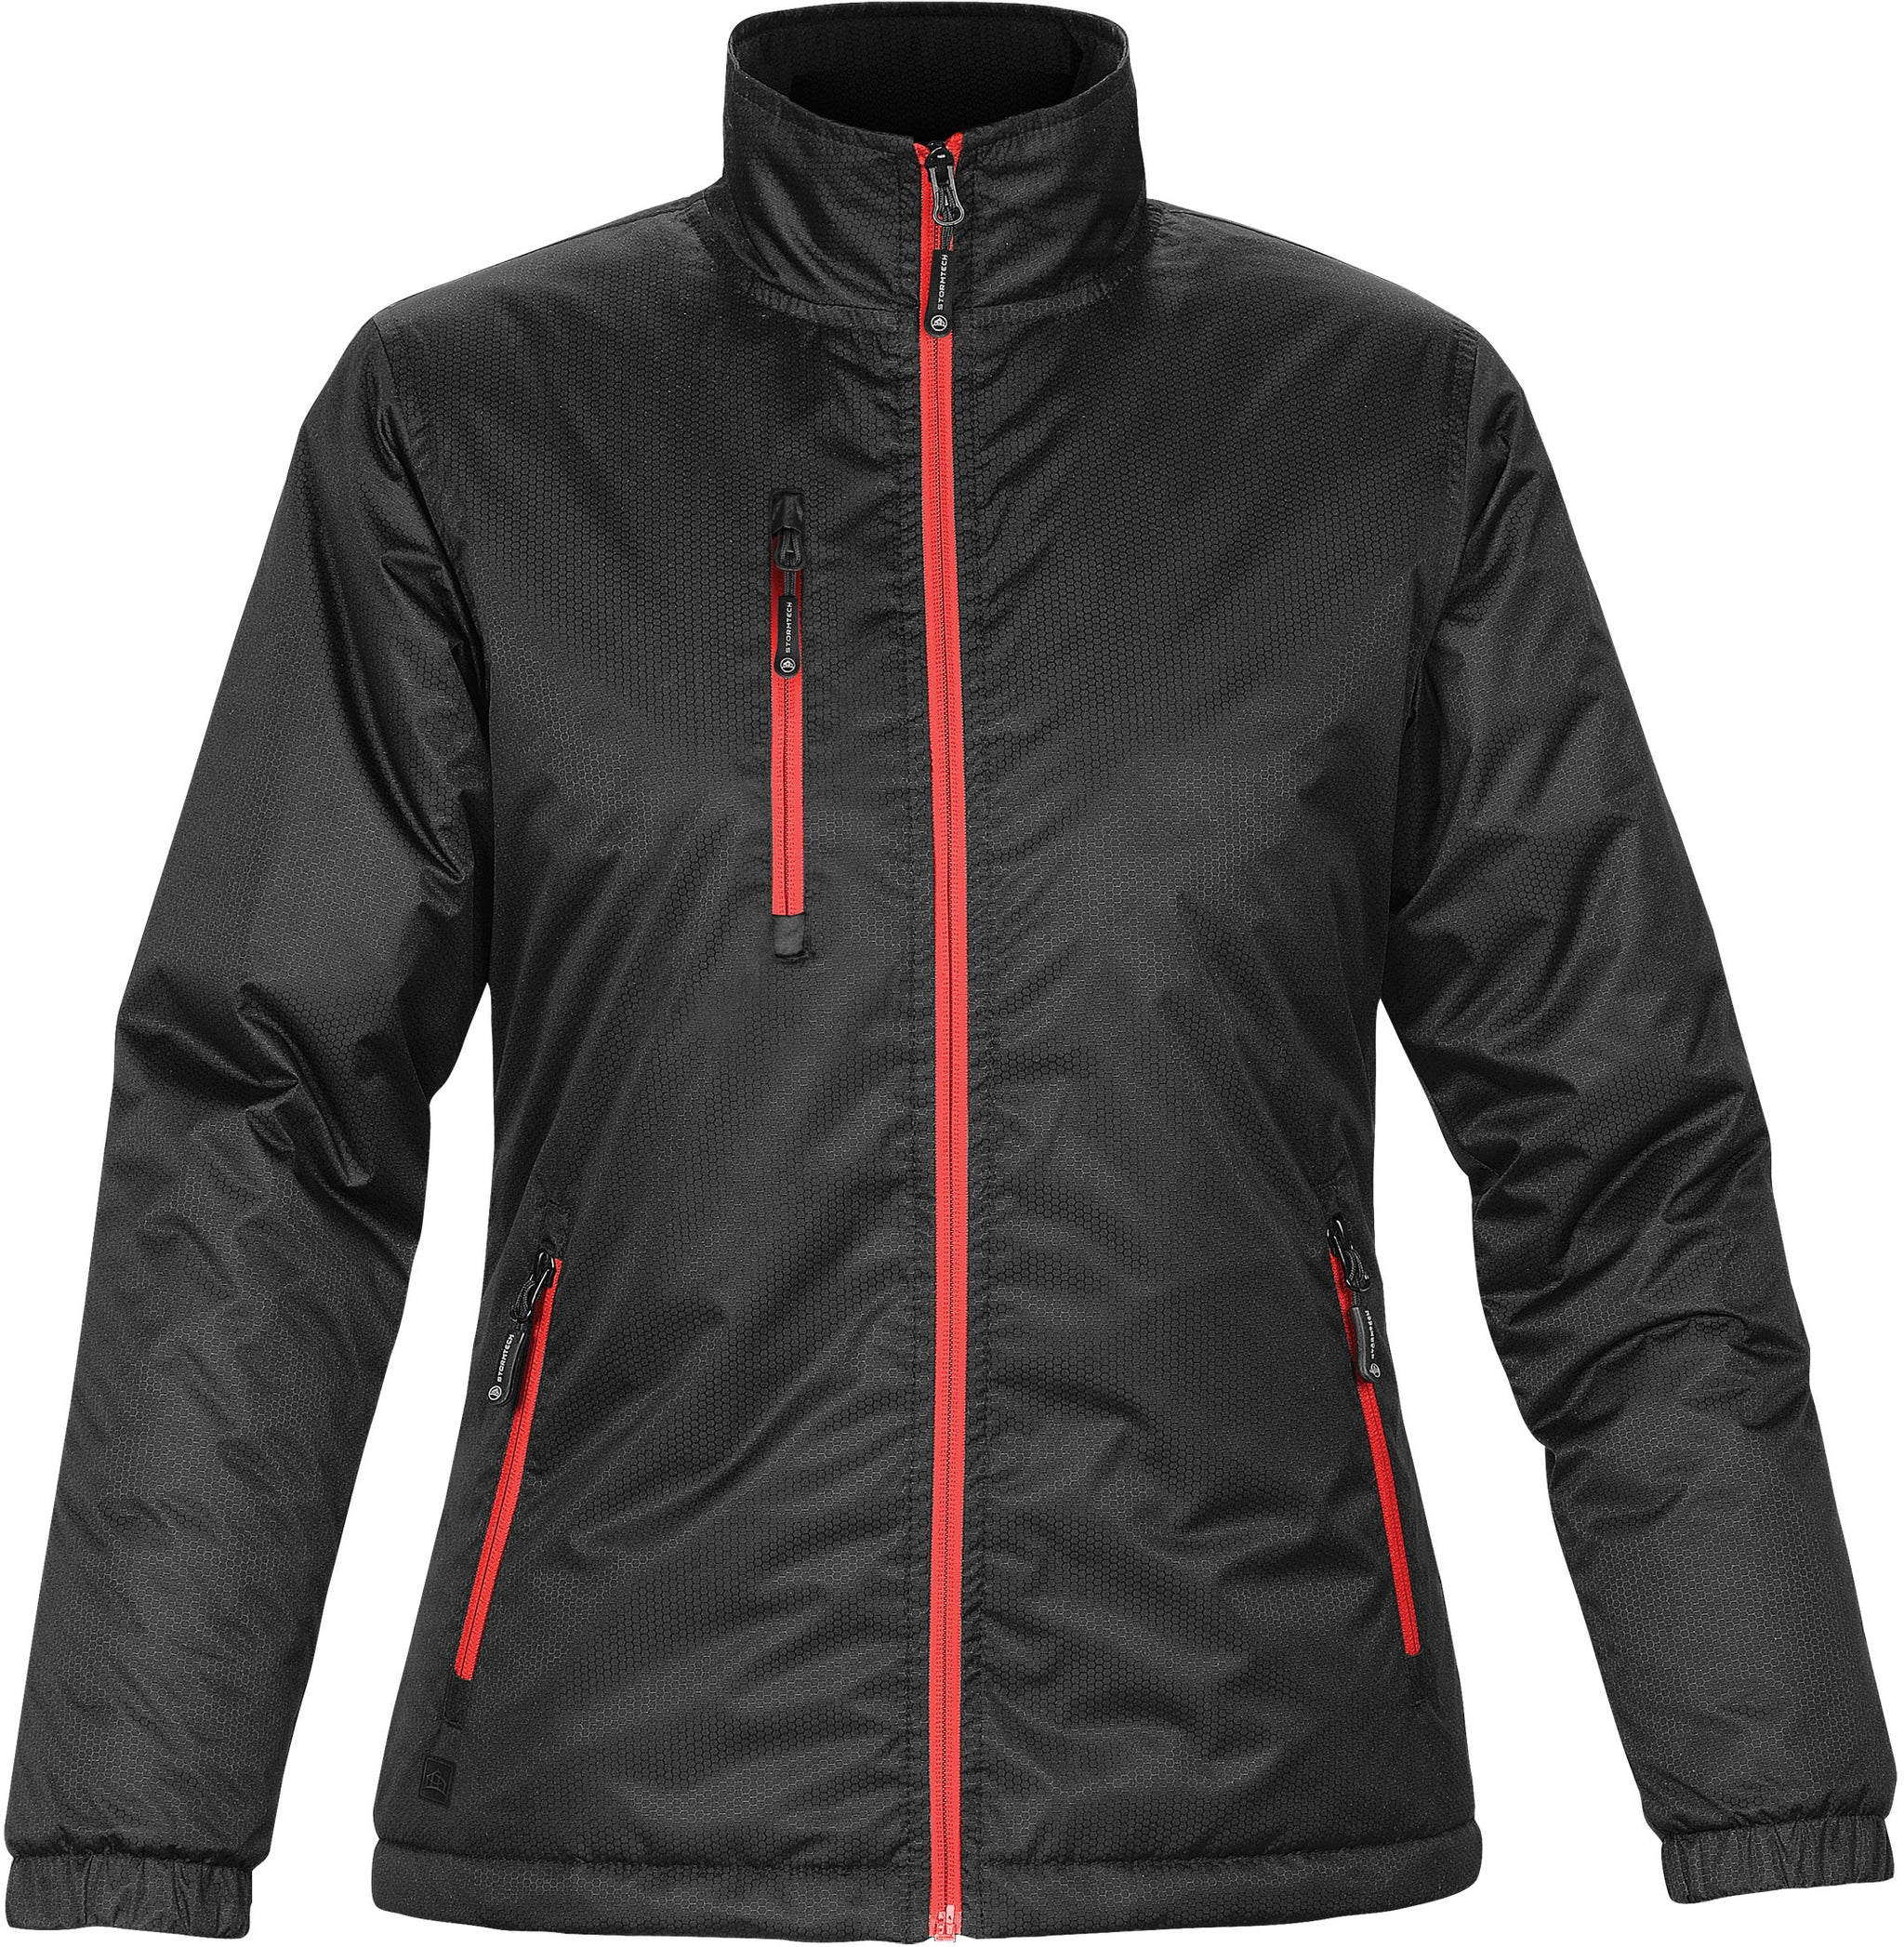 STORMTECH LADIES AXIS THERMAL SHELL JACKET